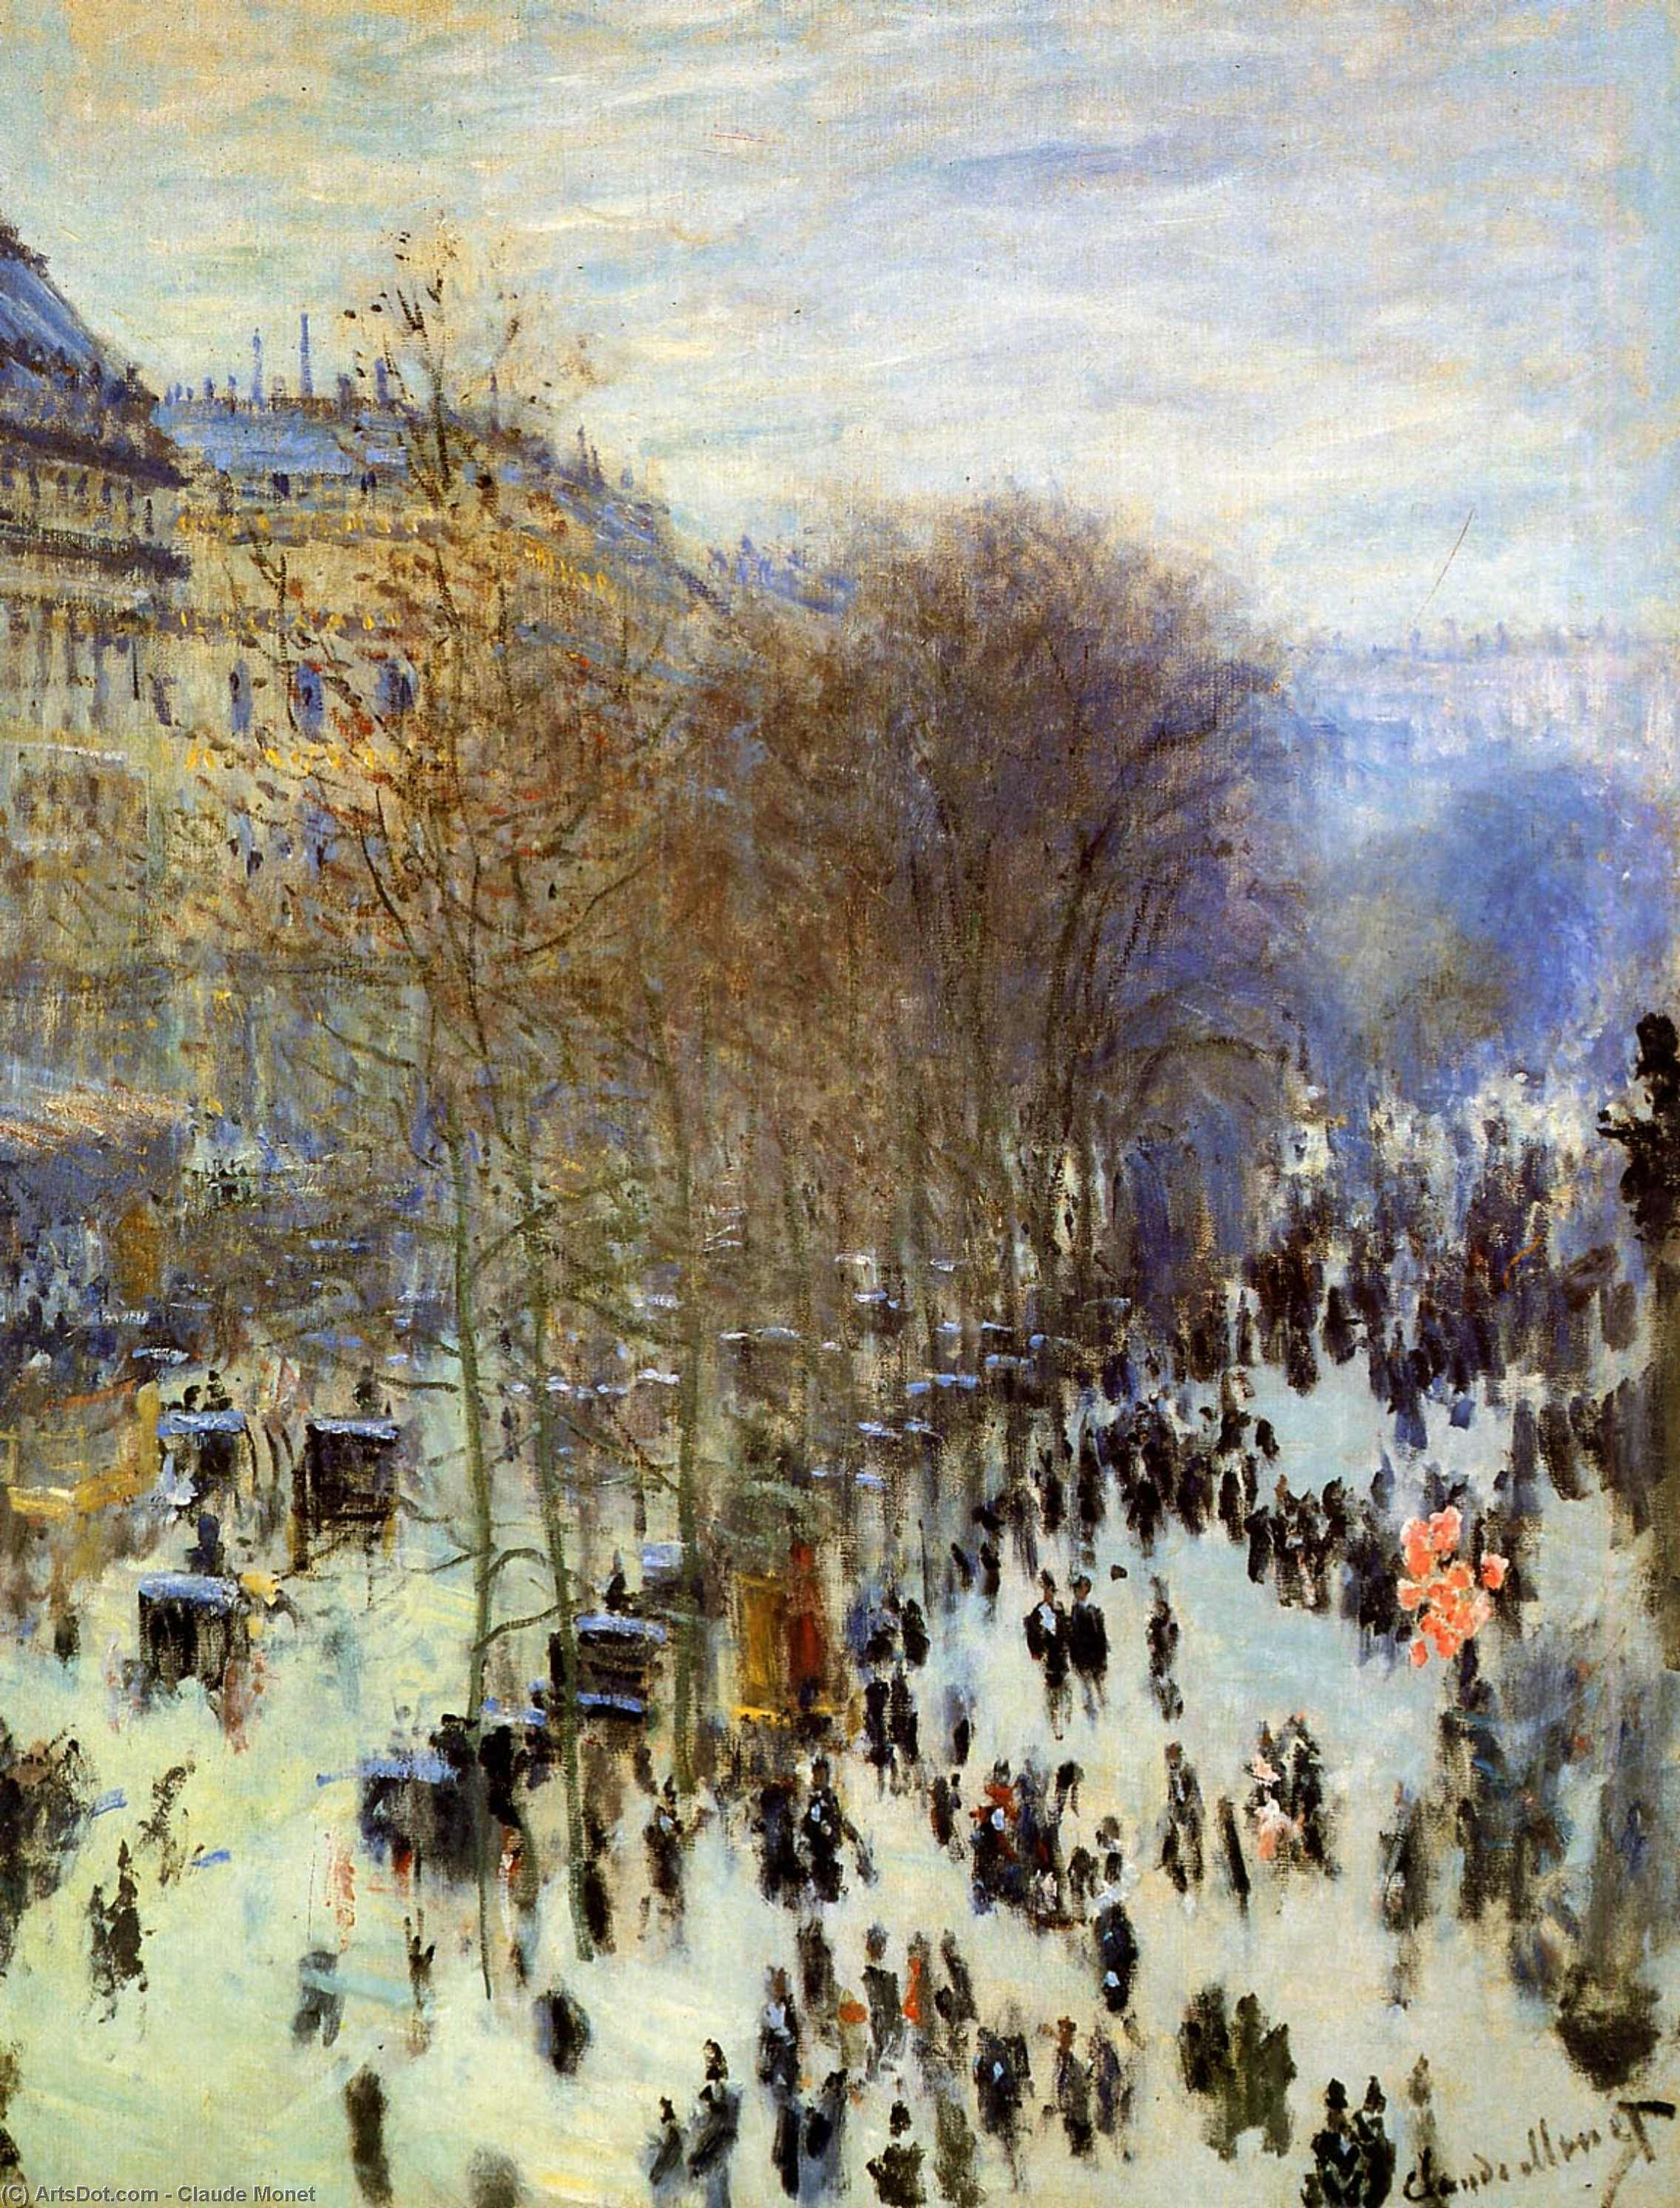 Wikioo.org - The Encyclopedia of Fine Arts - Painting, Artwork by Claude Monet - The Boulevard des Capucines